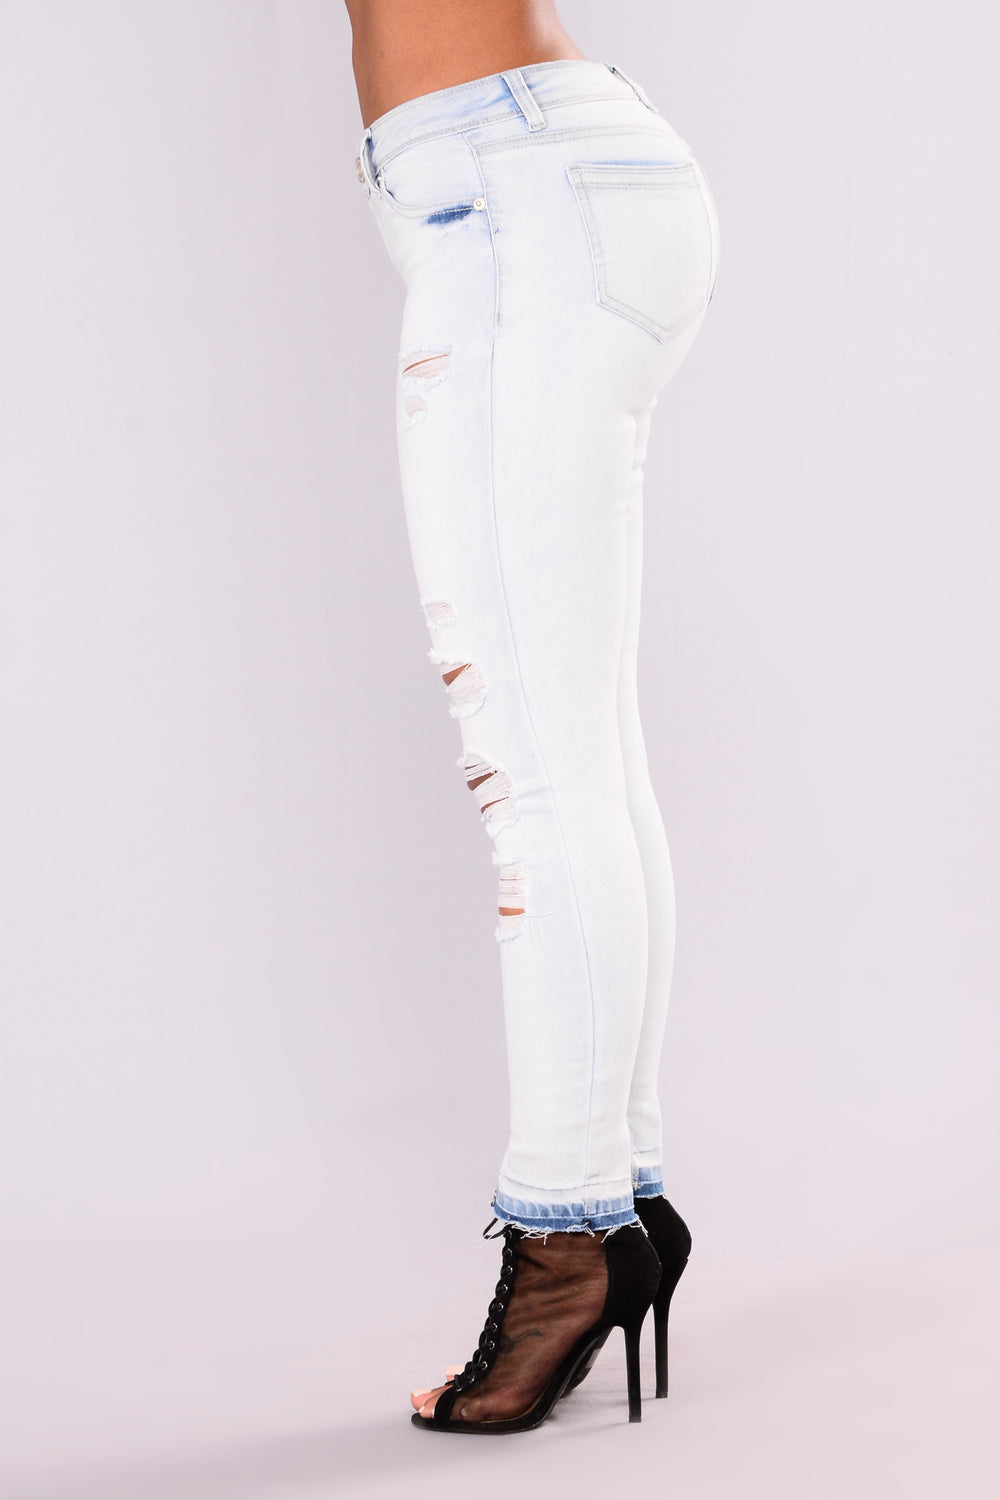 Up Against The Wall Ankle Jeans - Light Blue Wash